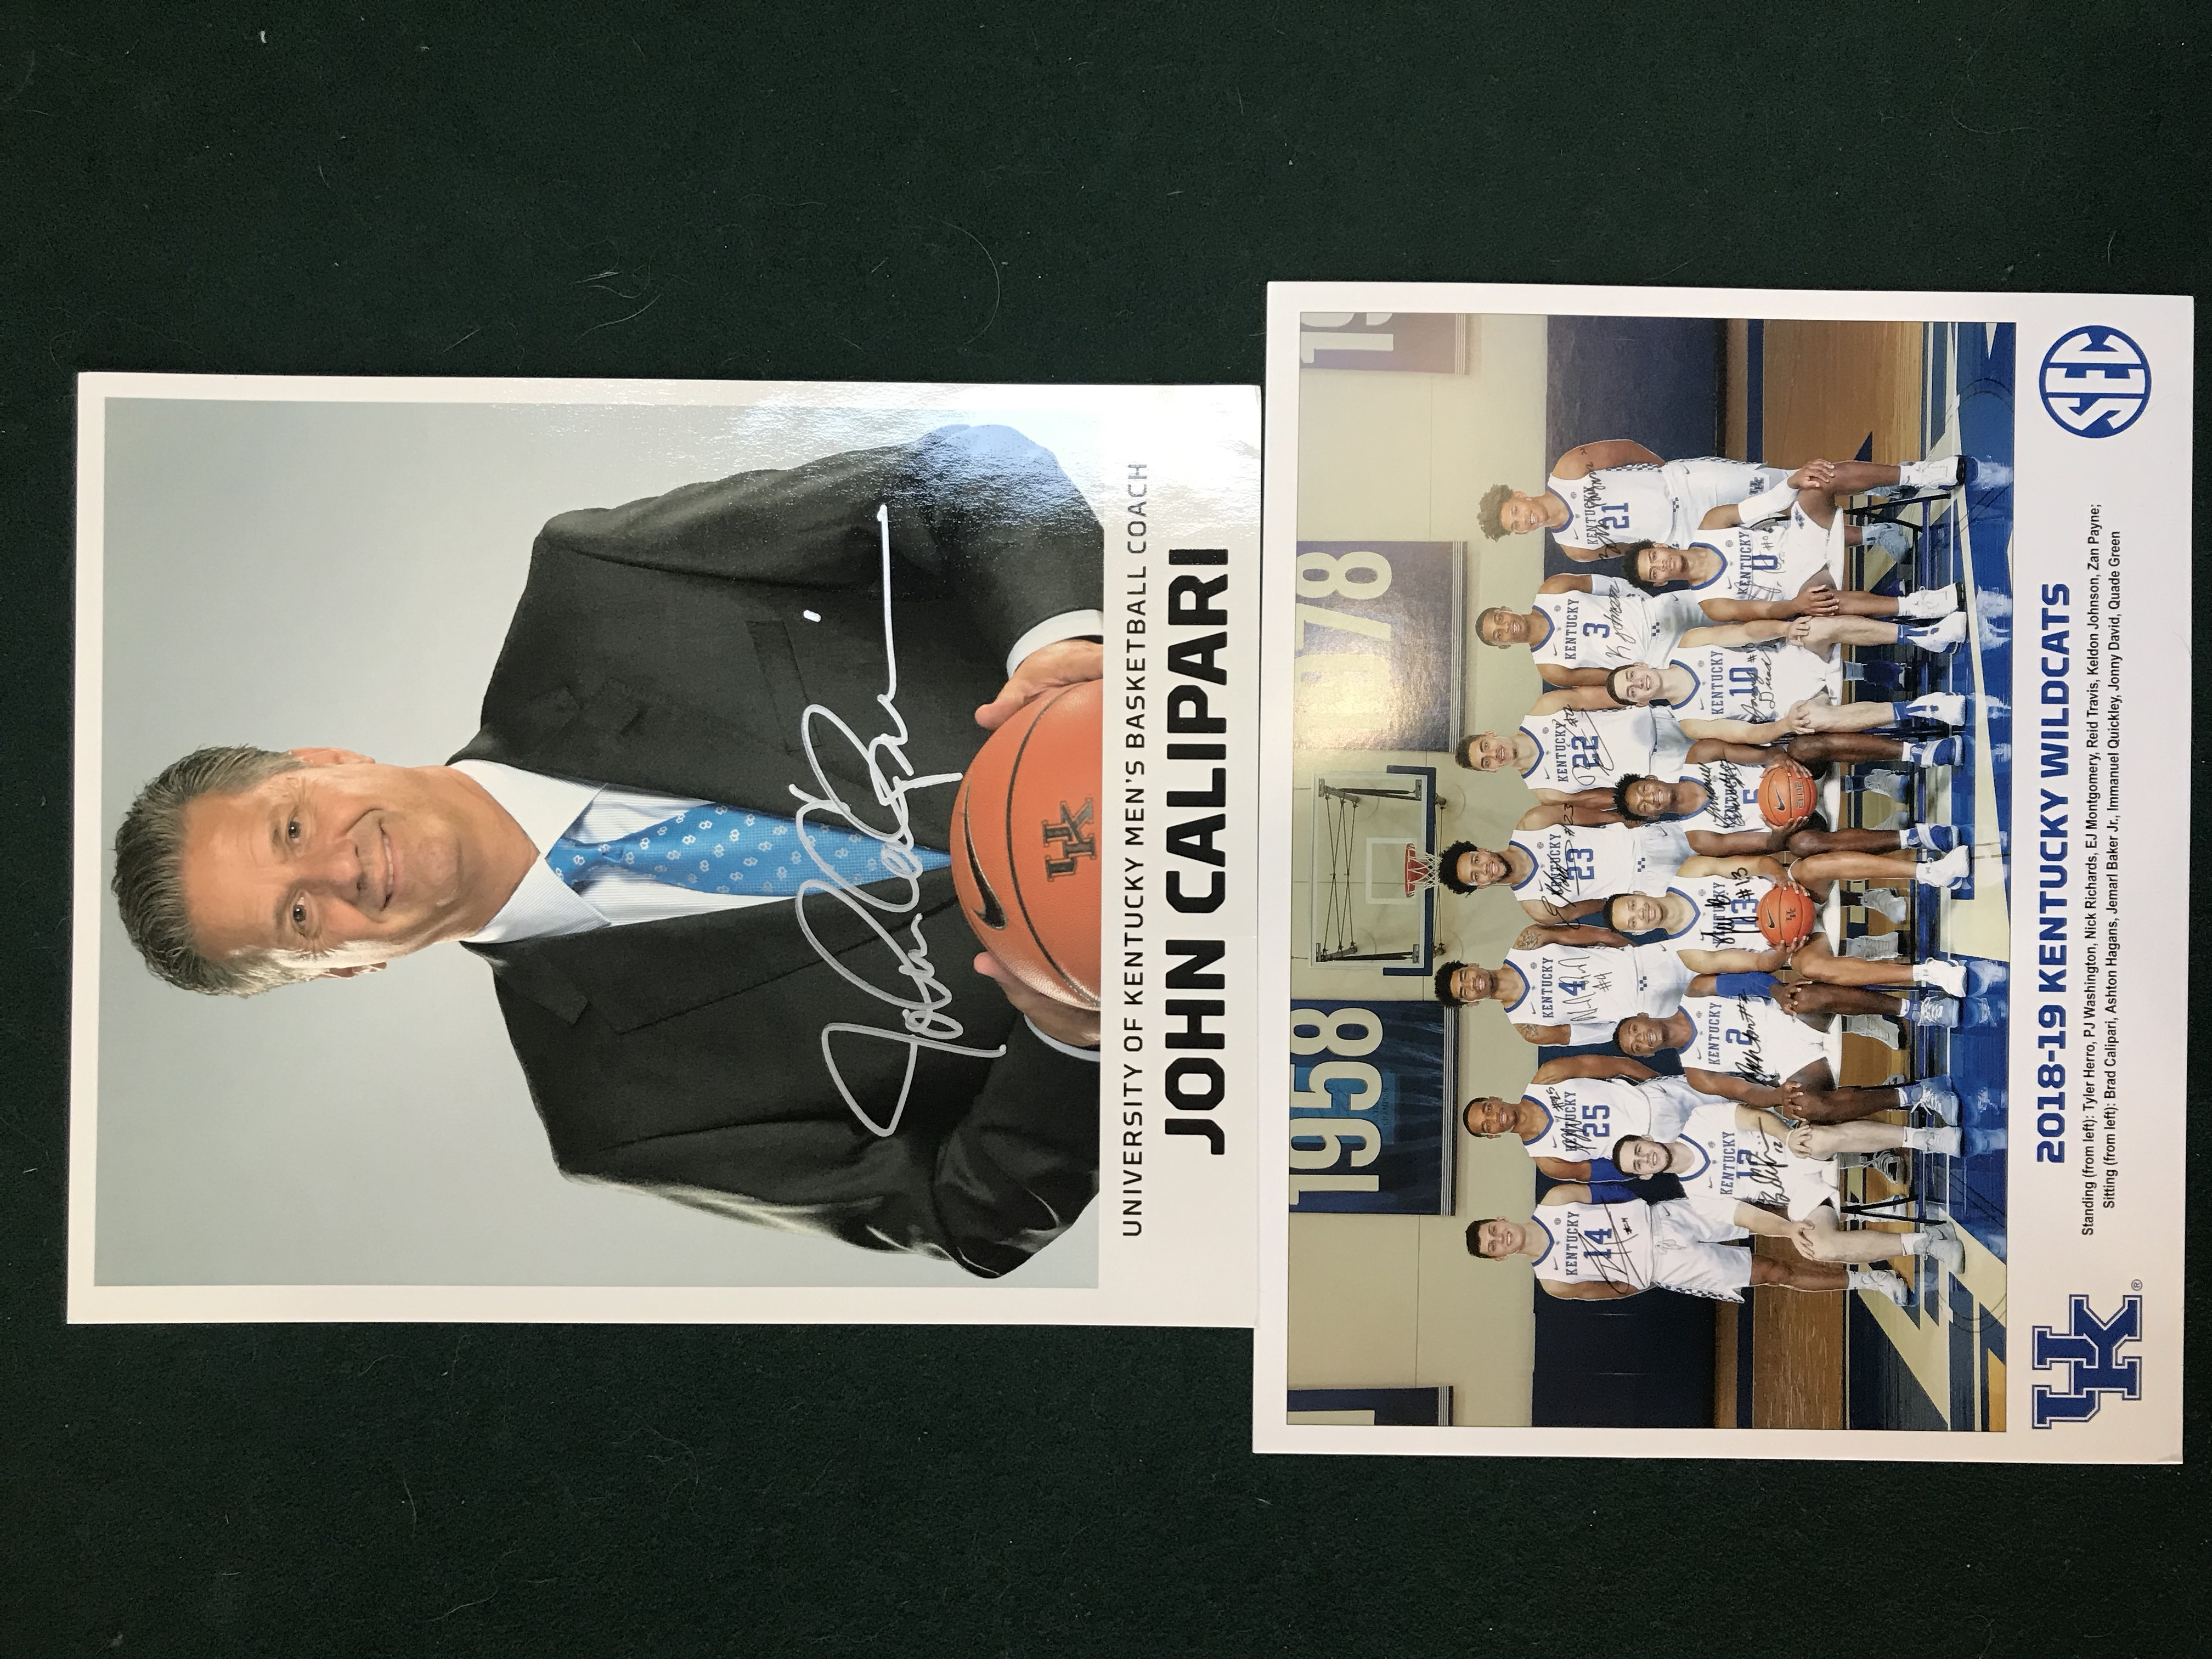 John Calipari Autographed Photo